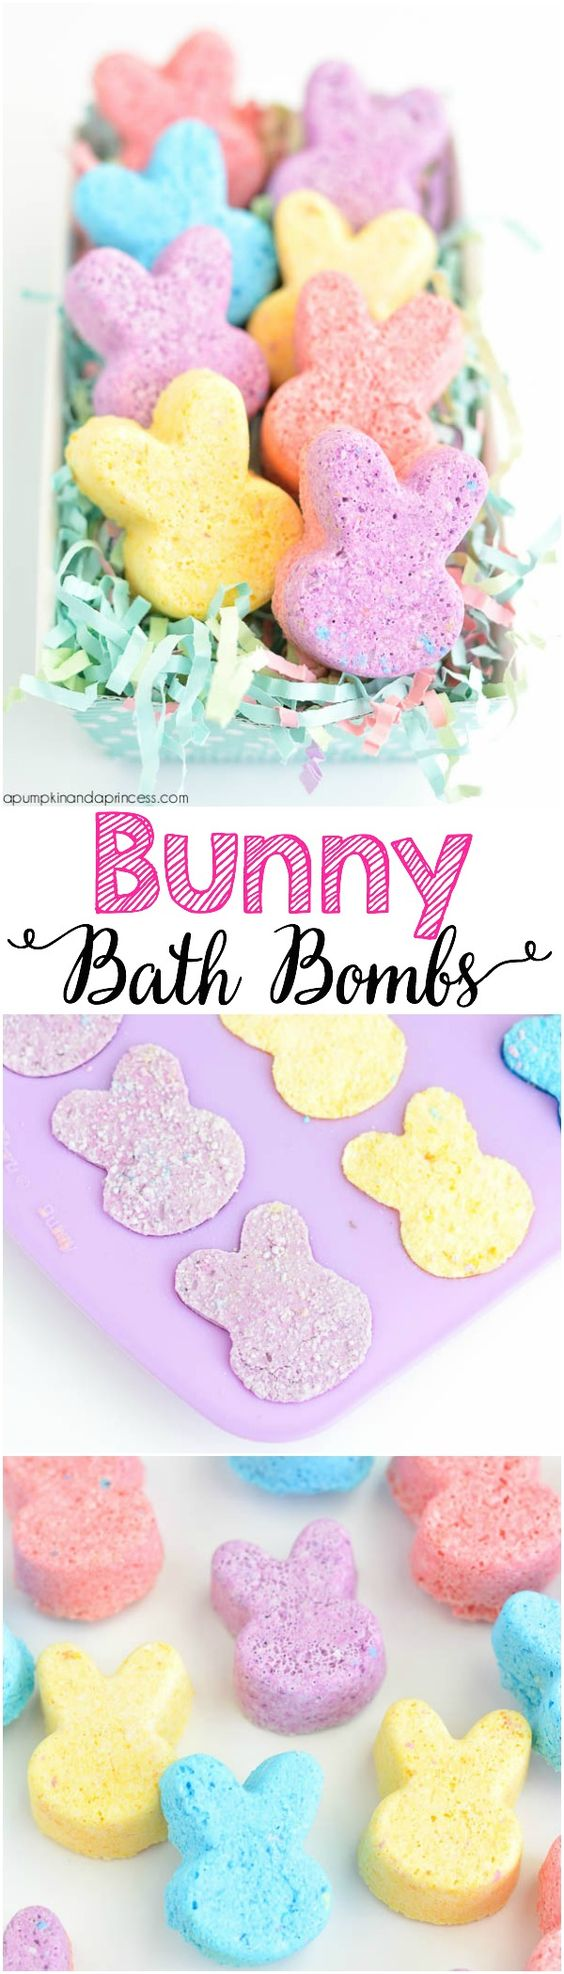 Diy bunny bath bombs from a pumpkin and a princess easter with diy bunny bath bombs from a pumpkin and a princess easter with joann pinterest bath bombs bath bomb and bunnies negle Image collections